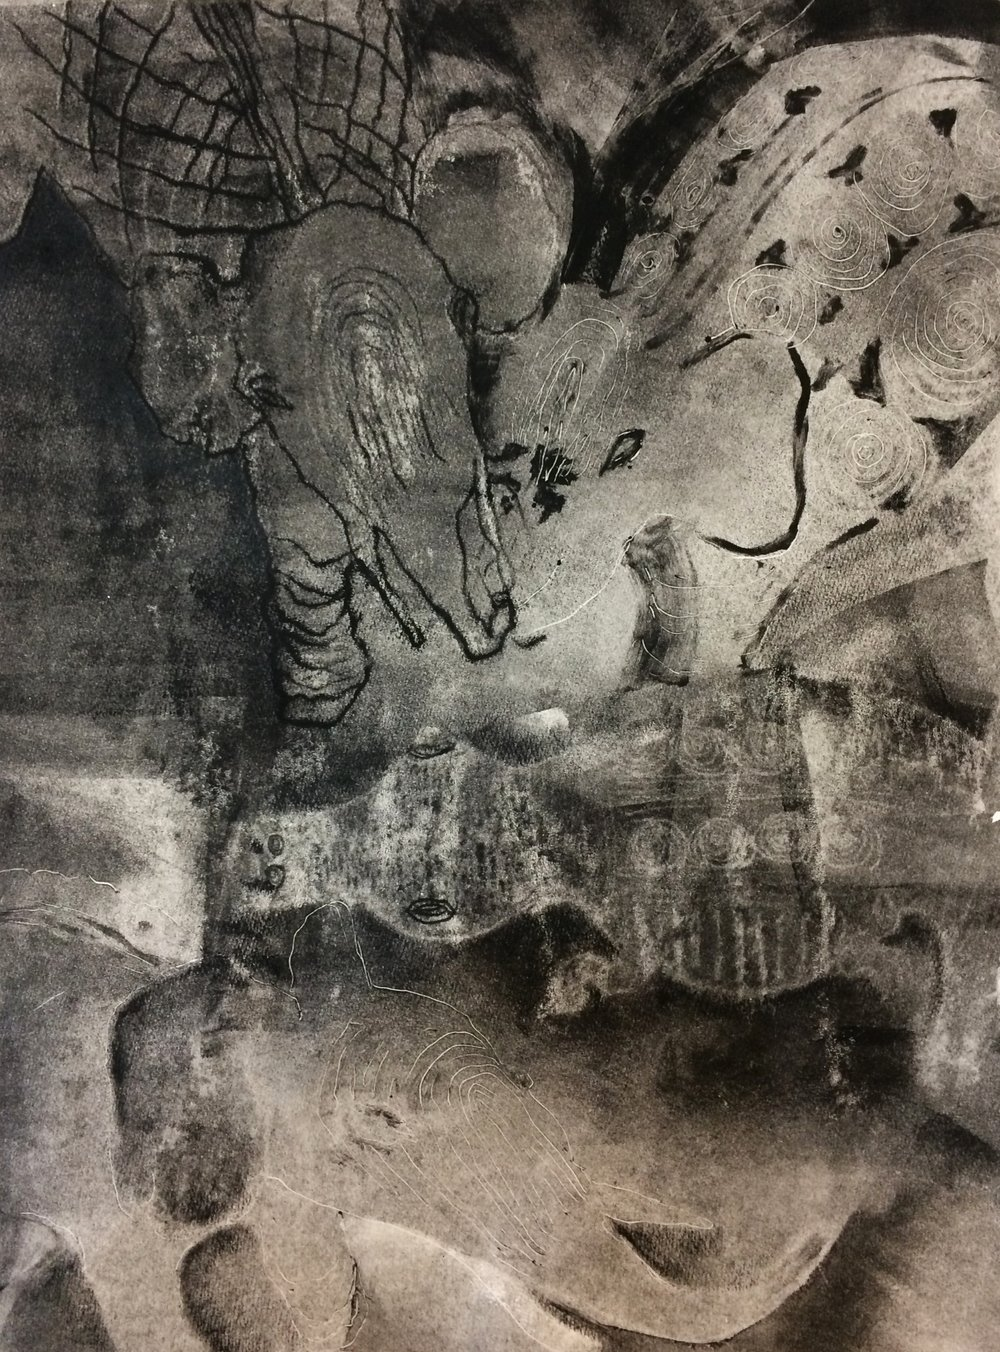 Elephants and Crocodile,  monotype, 10 x 14, 2017